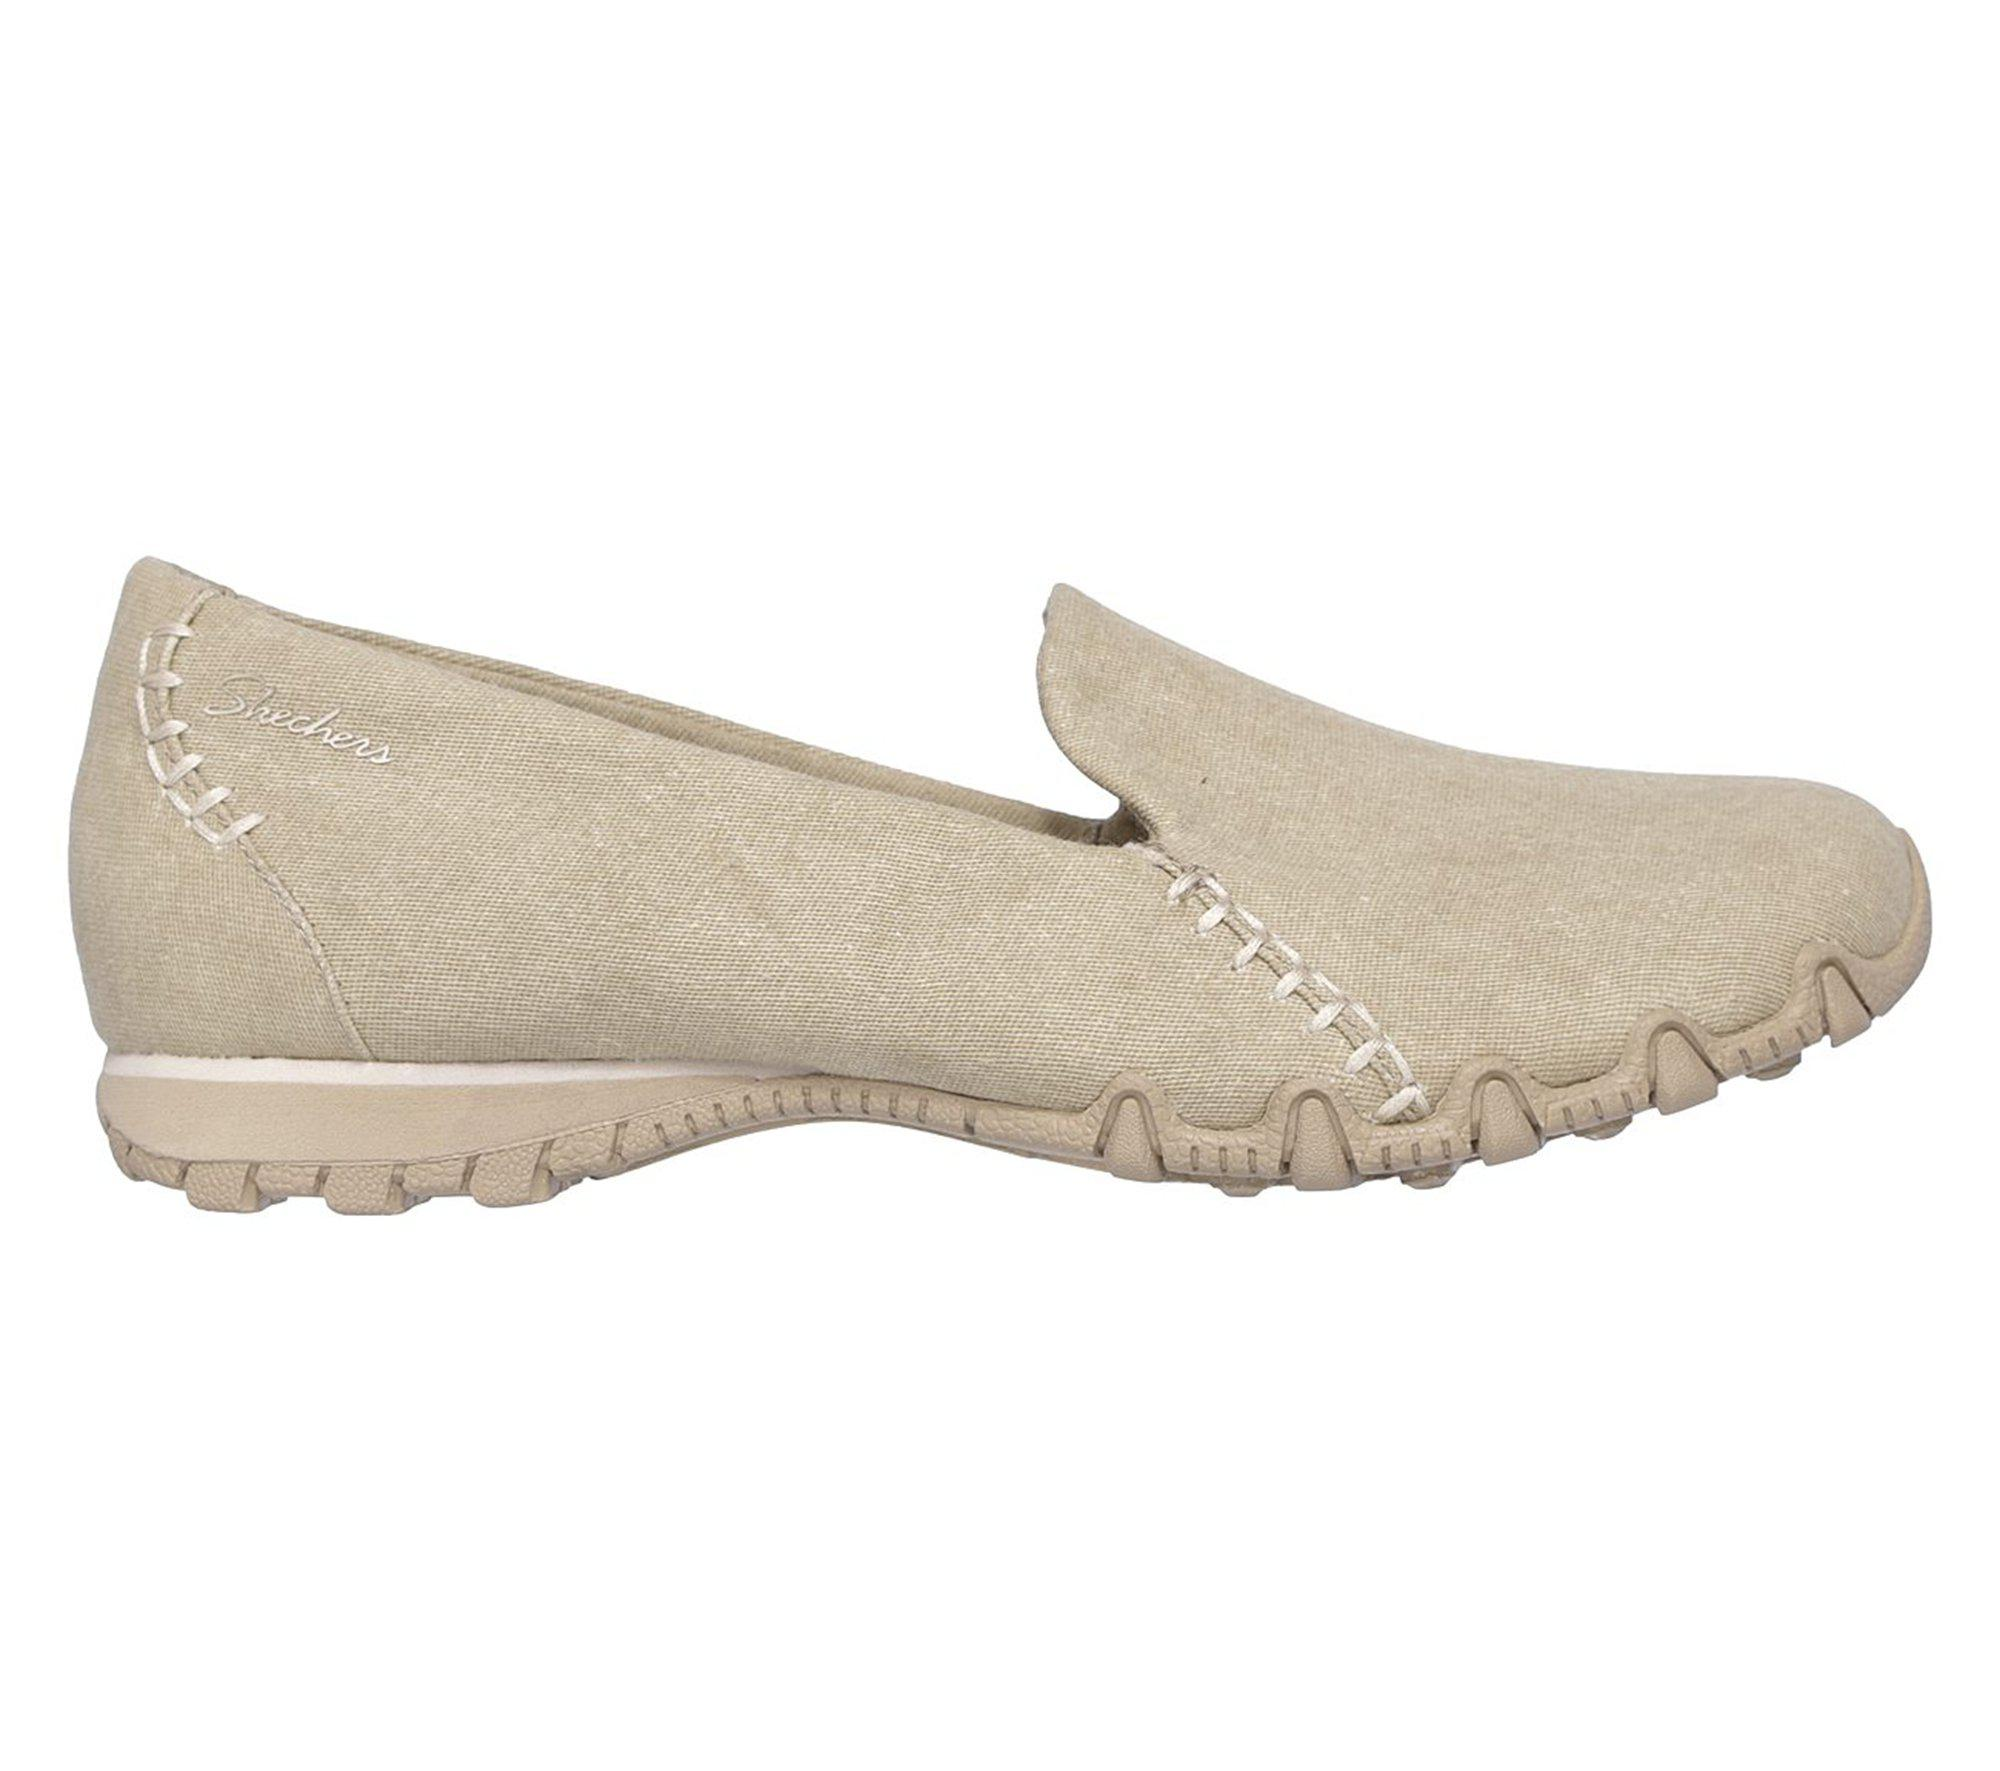 8eec2b369f16d Lyst - Skechers Relaxed Fit: Bikers - Smokin in Natural